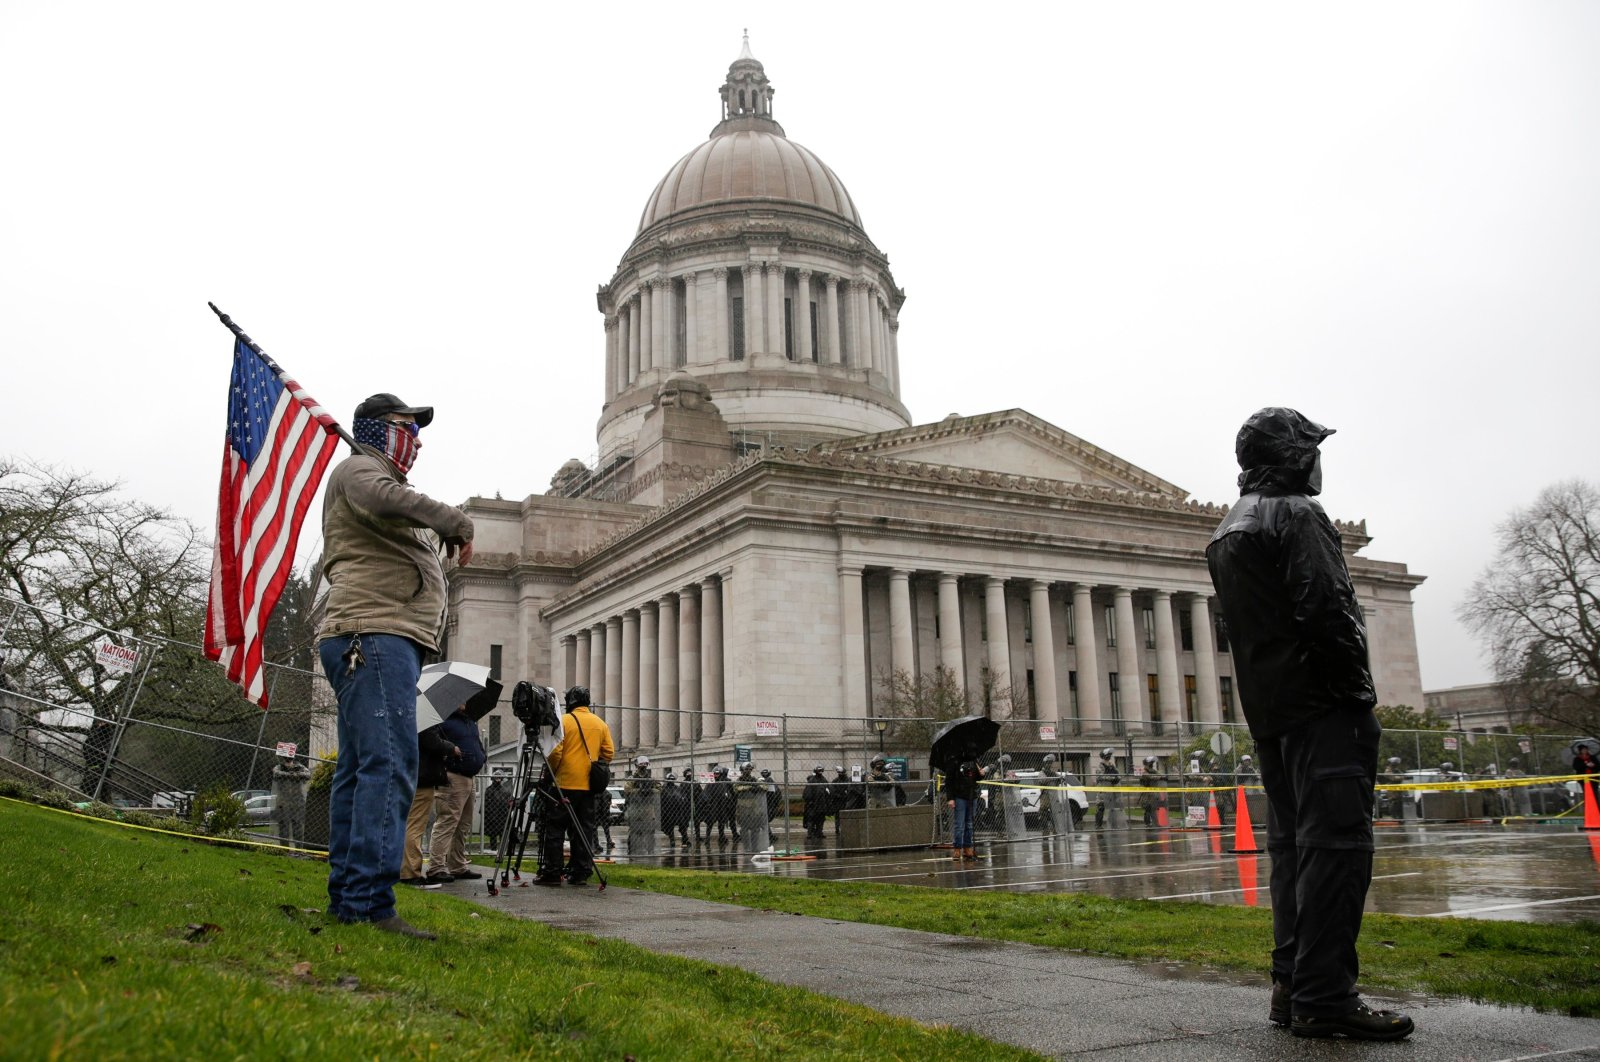 A demonstrator, who wished to remain anonymous, holds an American flag as the Washington National Guard, State Patrol and a fence surround the state Capitol as the Legislature opens the 2021 session in Olympia, Washington, Jan. 11, 2021. (AFP Photo)